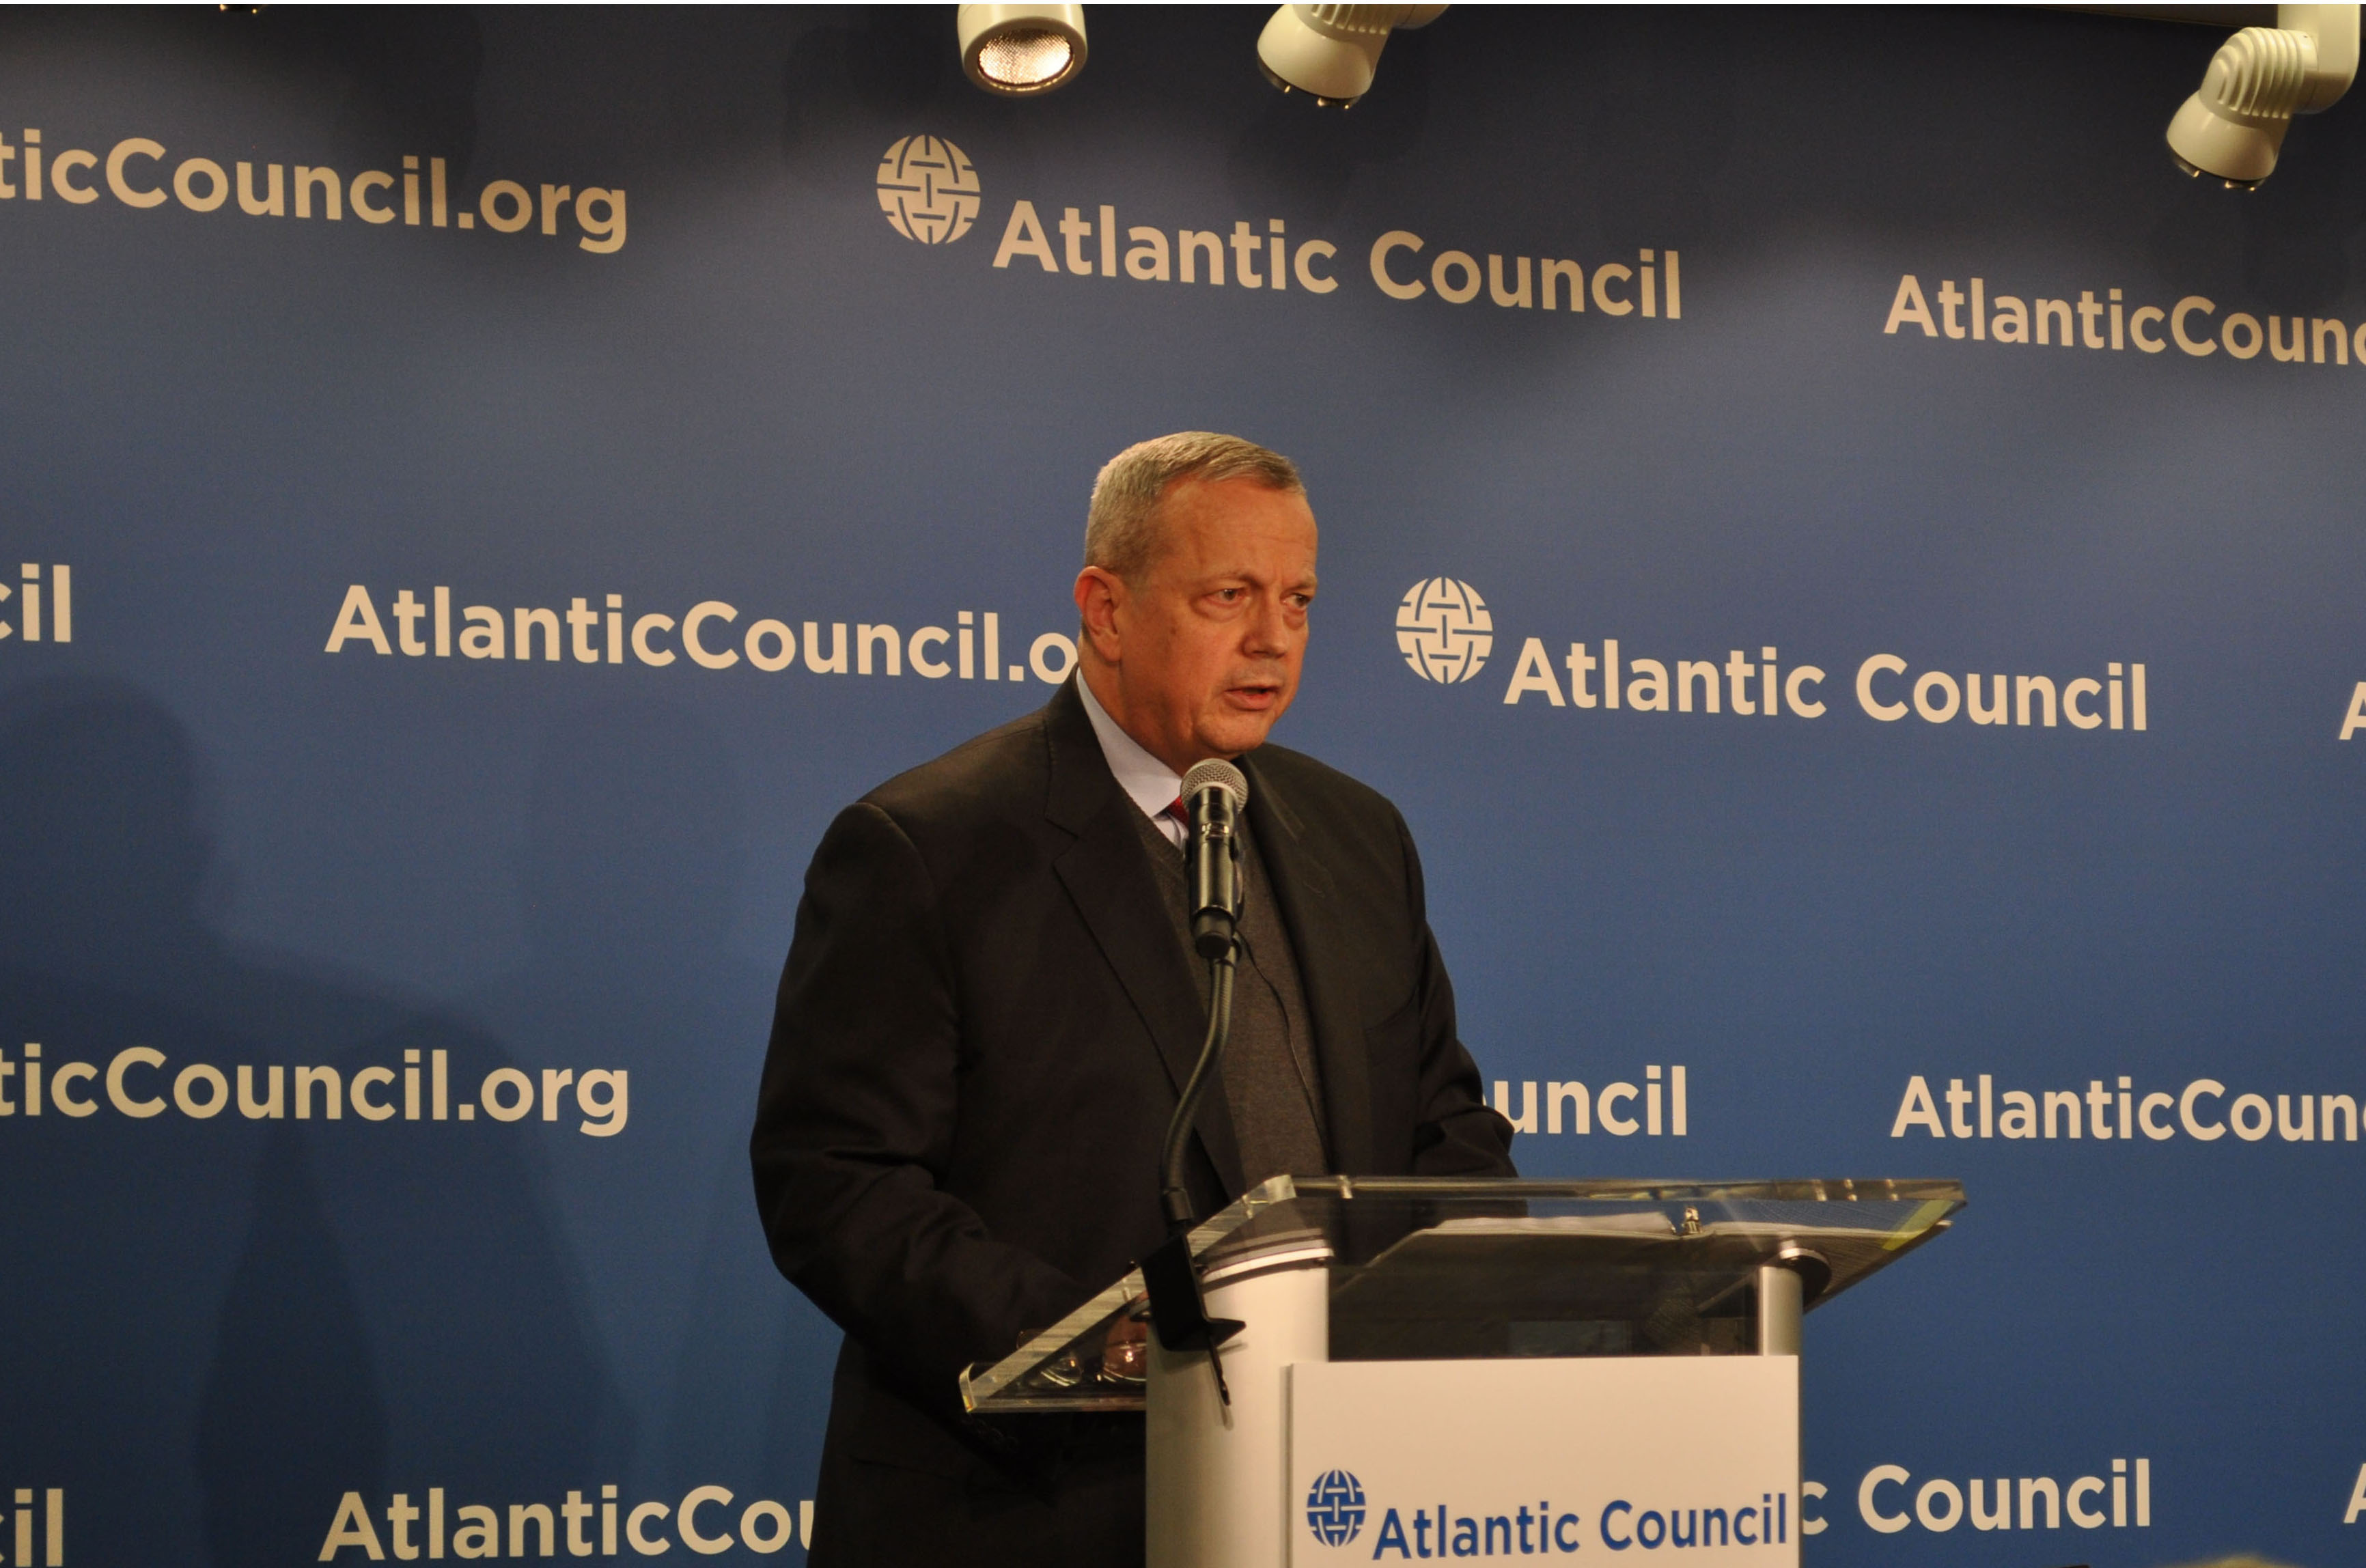 ISIL Affiliates, Foreign Fighters 'Preeminent' Concern, Allen Says